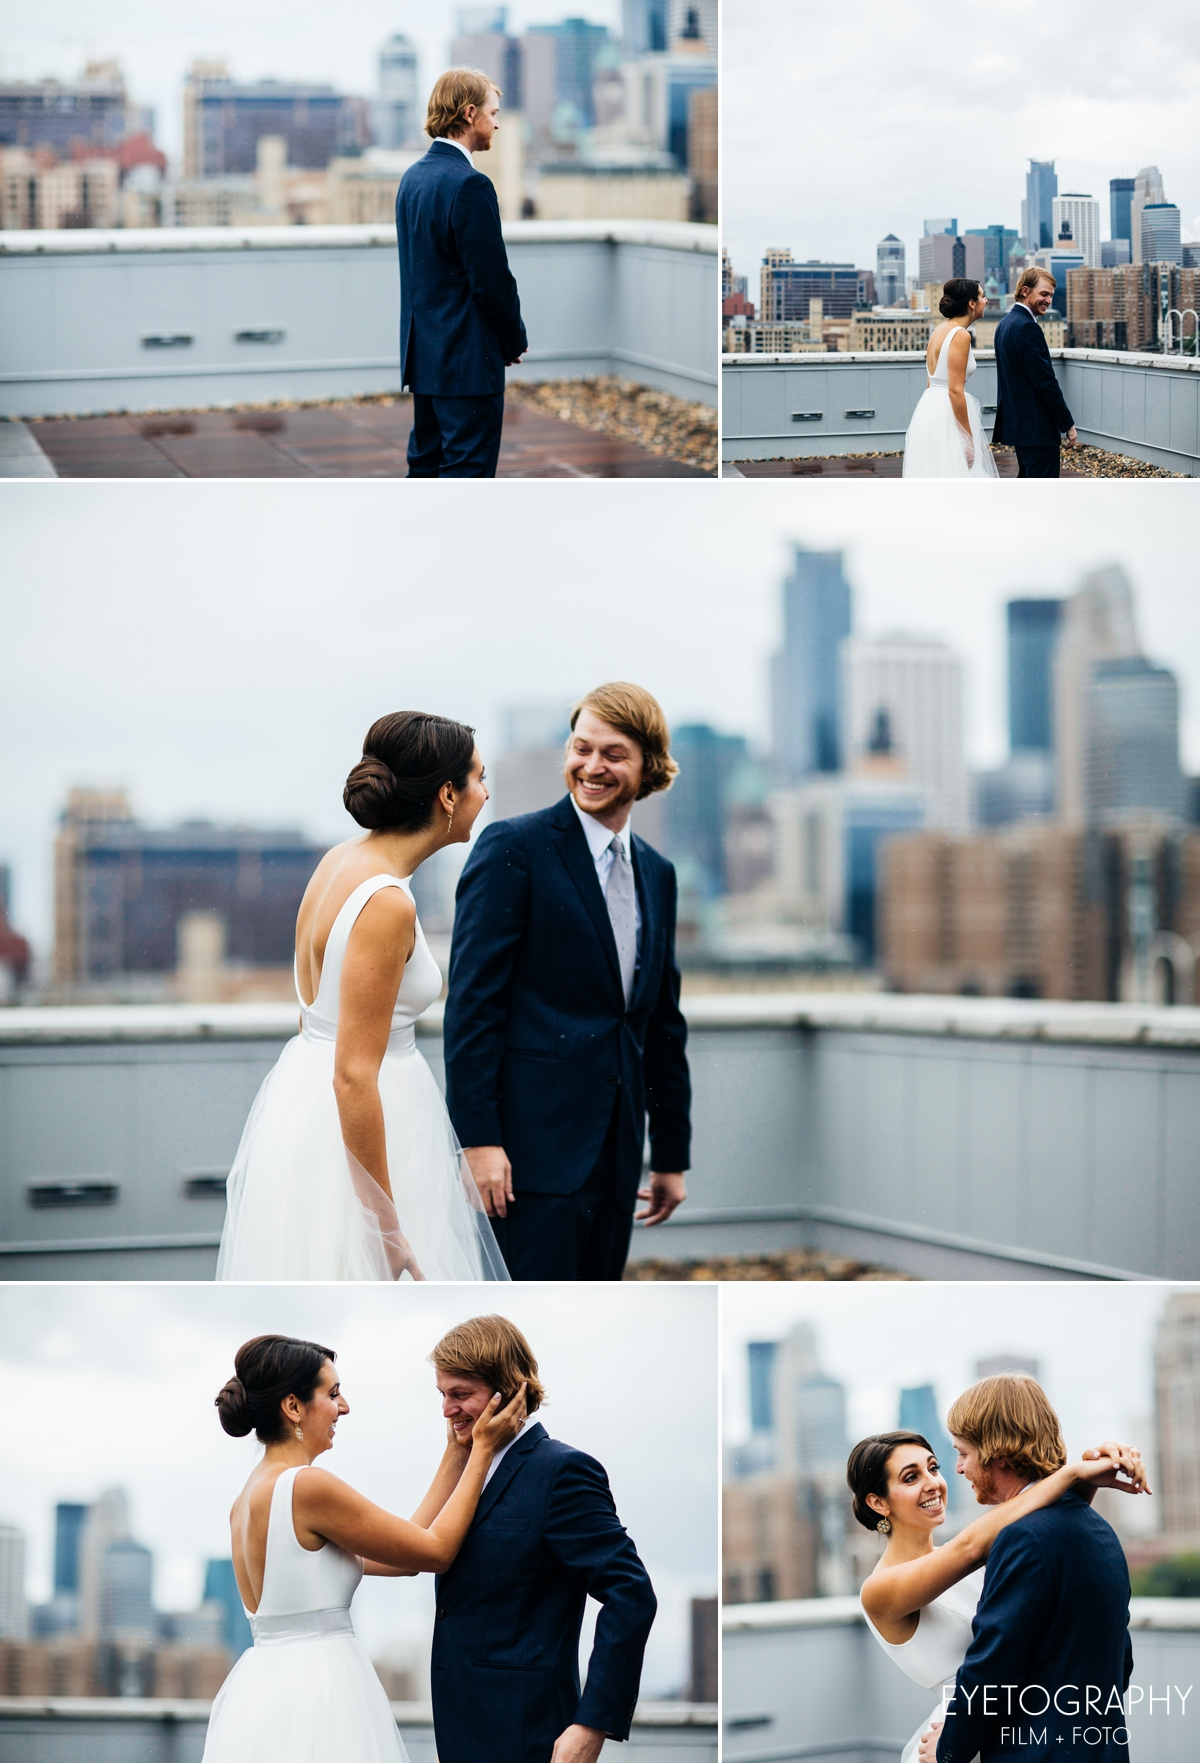 Aster Cafe Wedding - Eyetography Film + Foto | Katharine + Blake 4